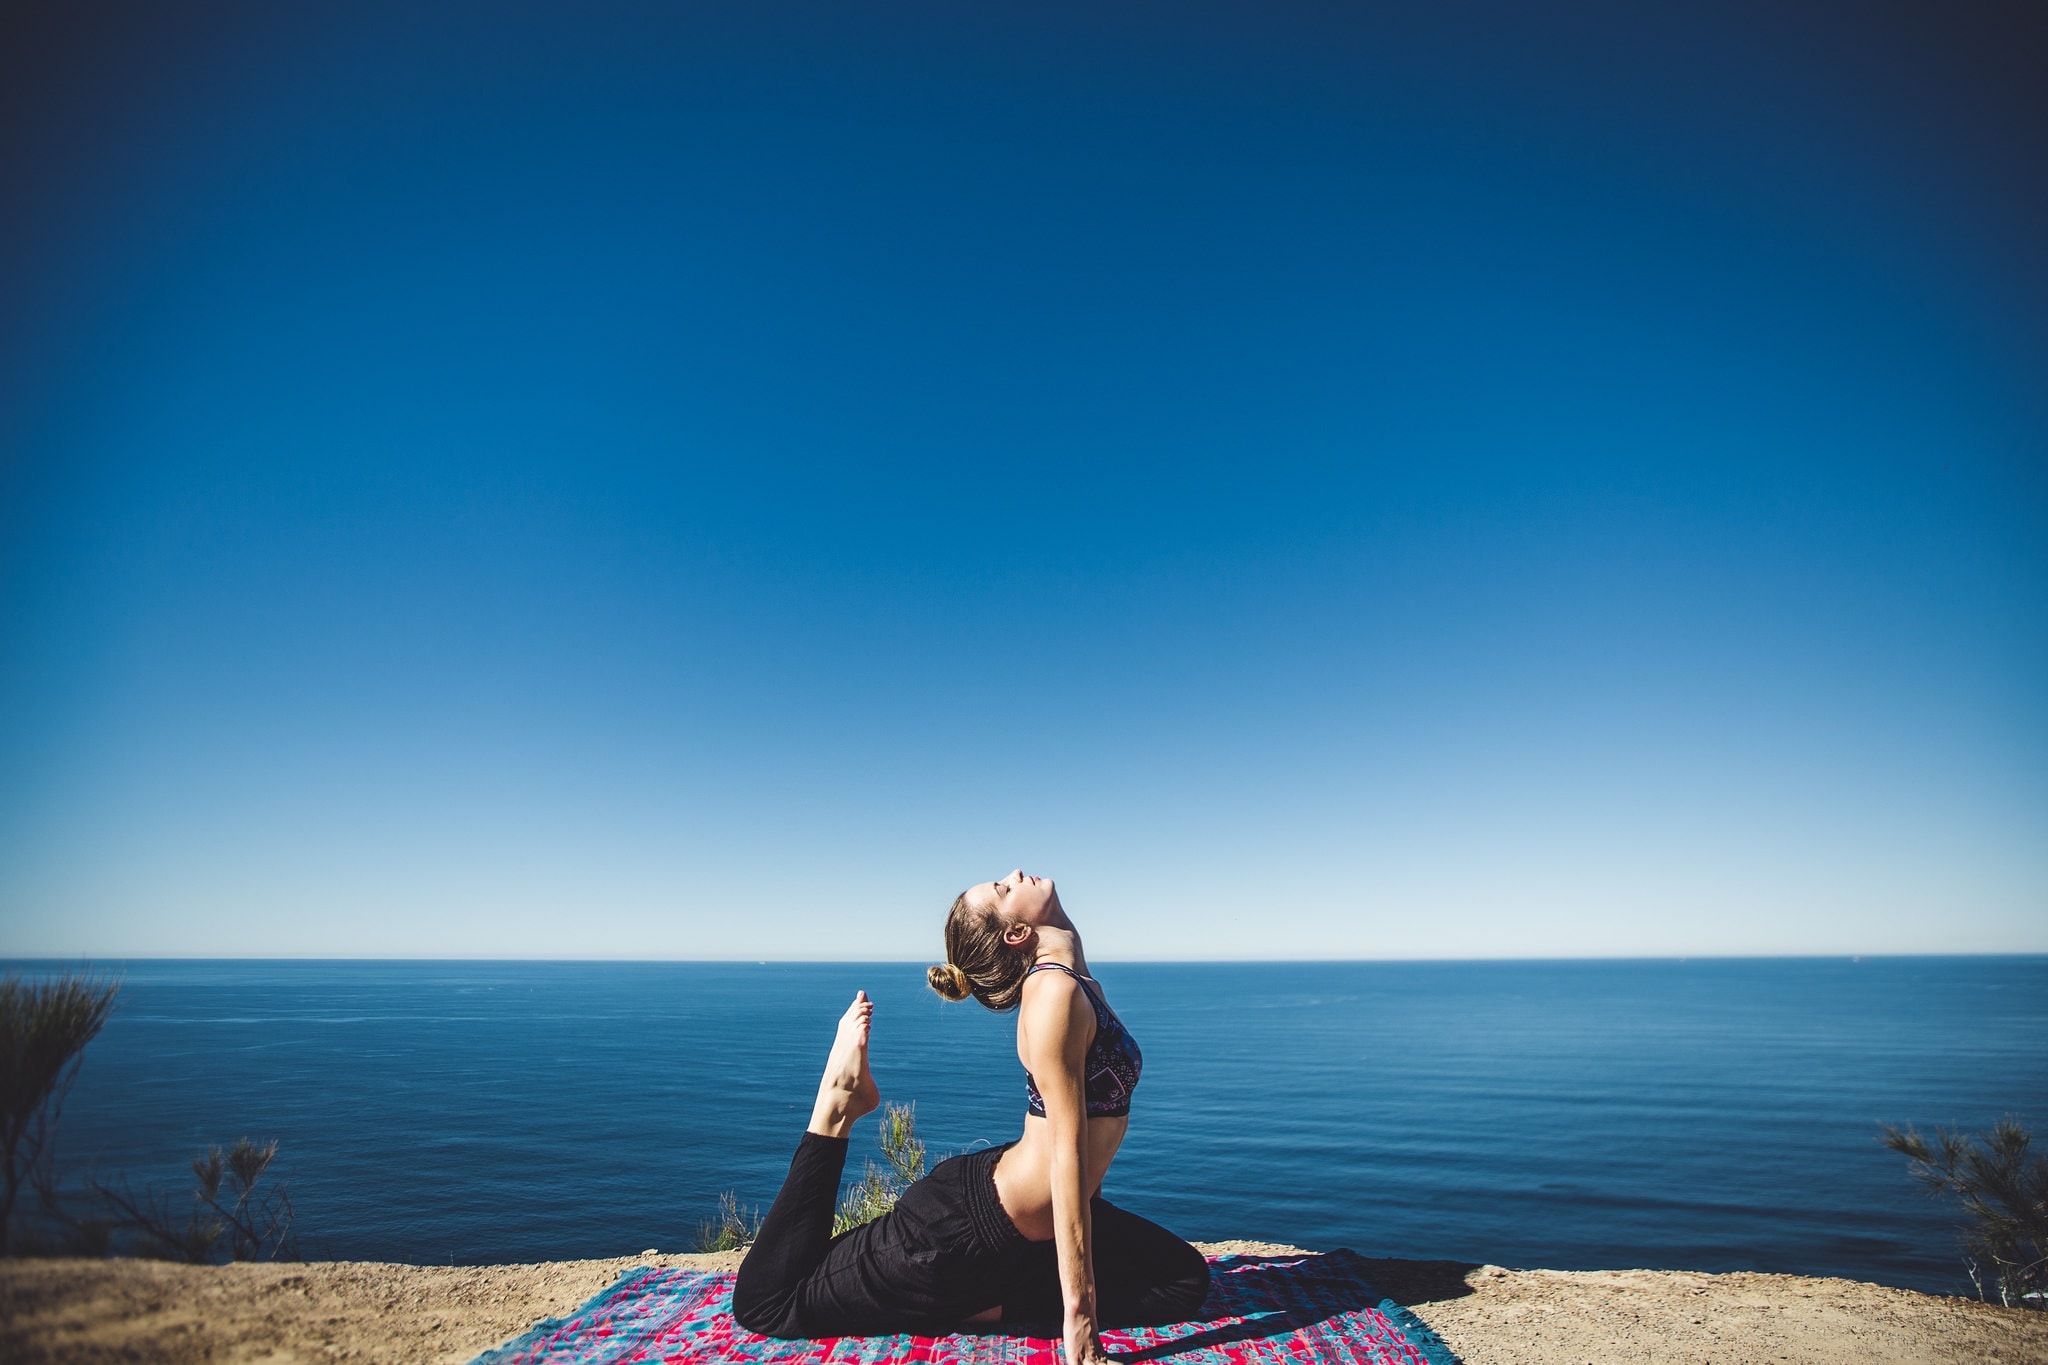 Yoga Relaxation | © ThoroughlyReviewed/Flickr